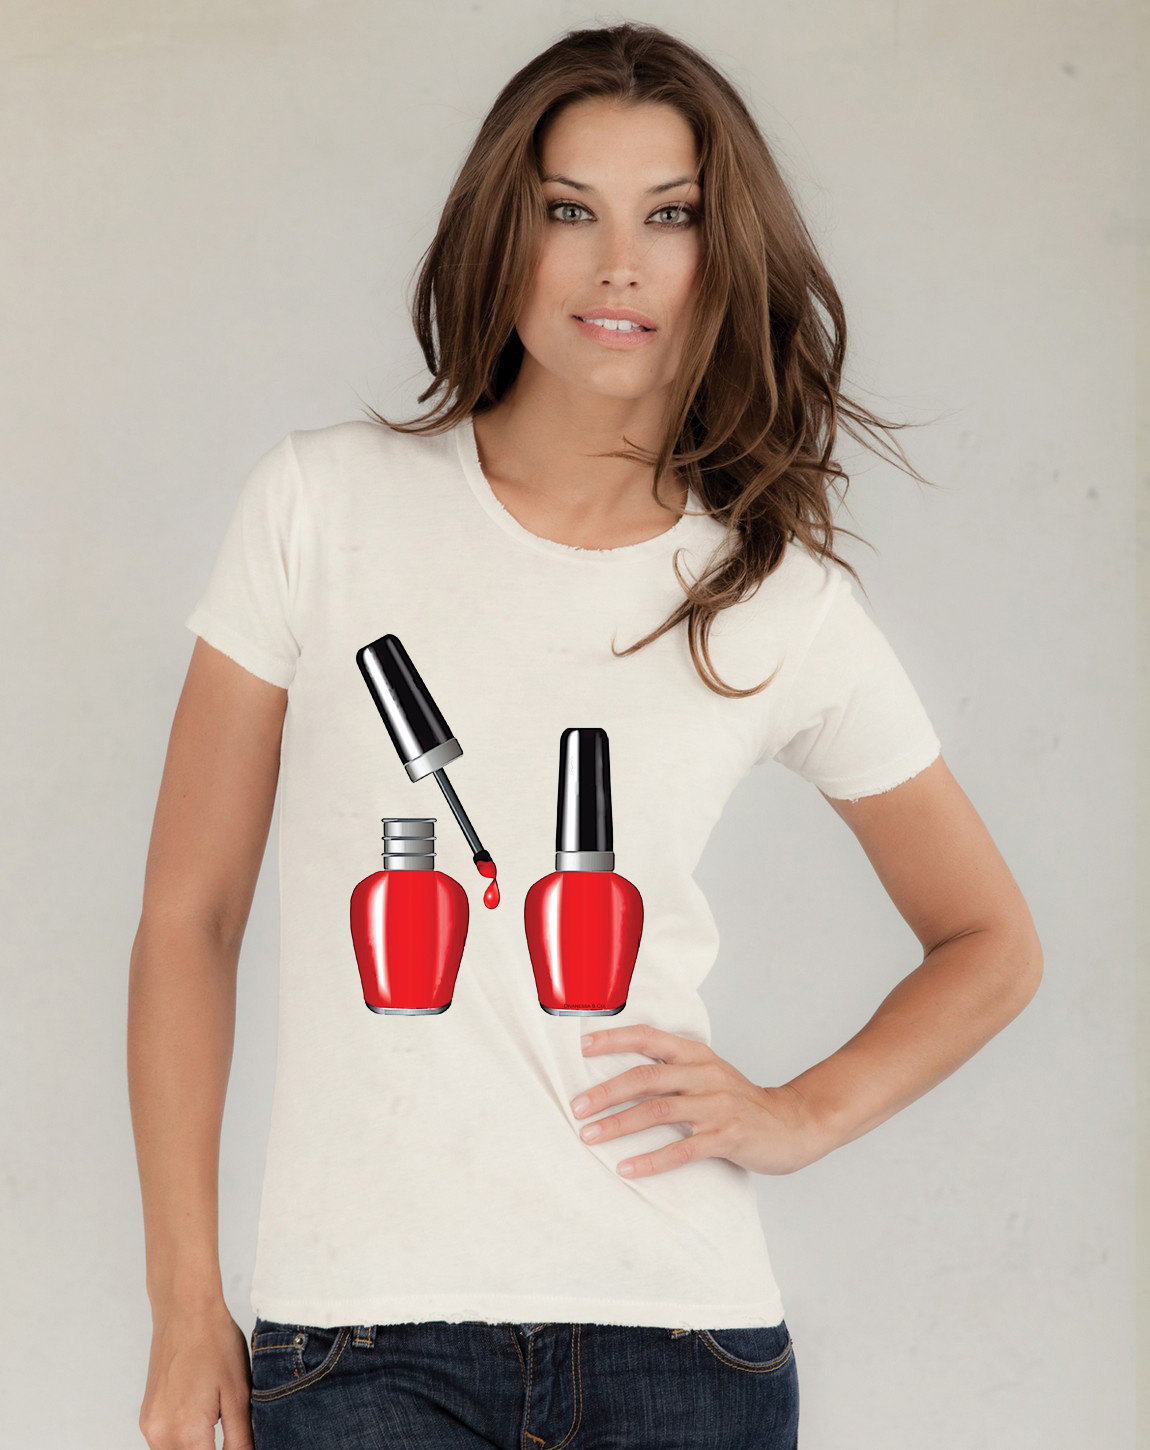 Red Nail Polish Tshirt  (15-004)